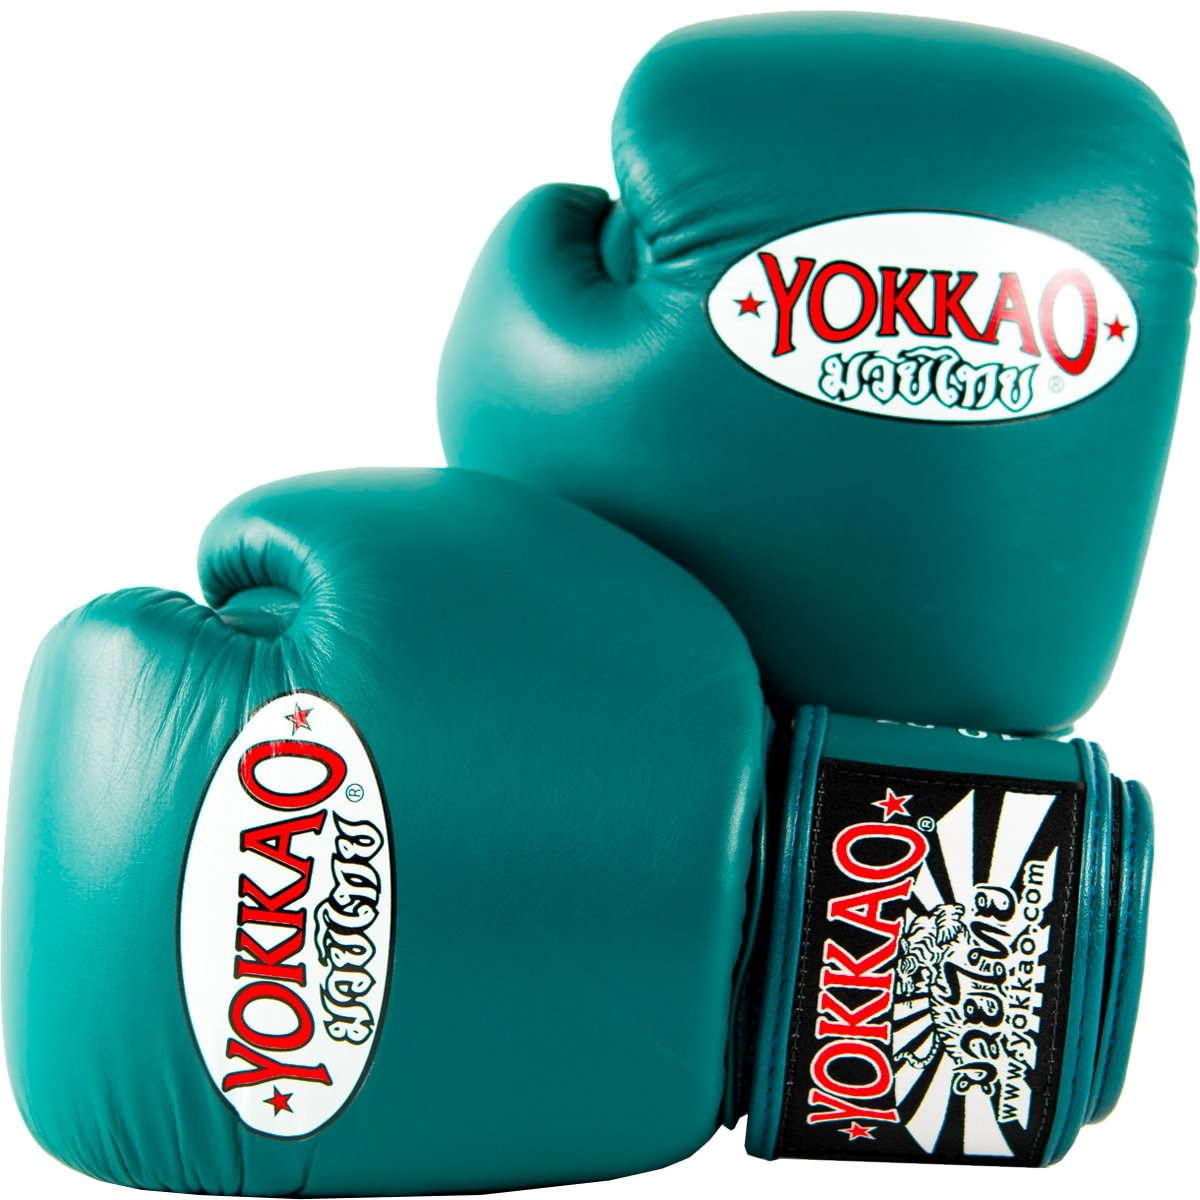 YOKKAO Cowhide Fight Gloves for Muay Thai, Boxing, Kickboxing and Martial Arts (Petroleum / 8 oz) by YOKKAO (Image #1)